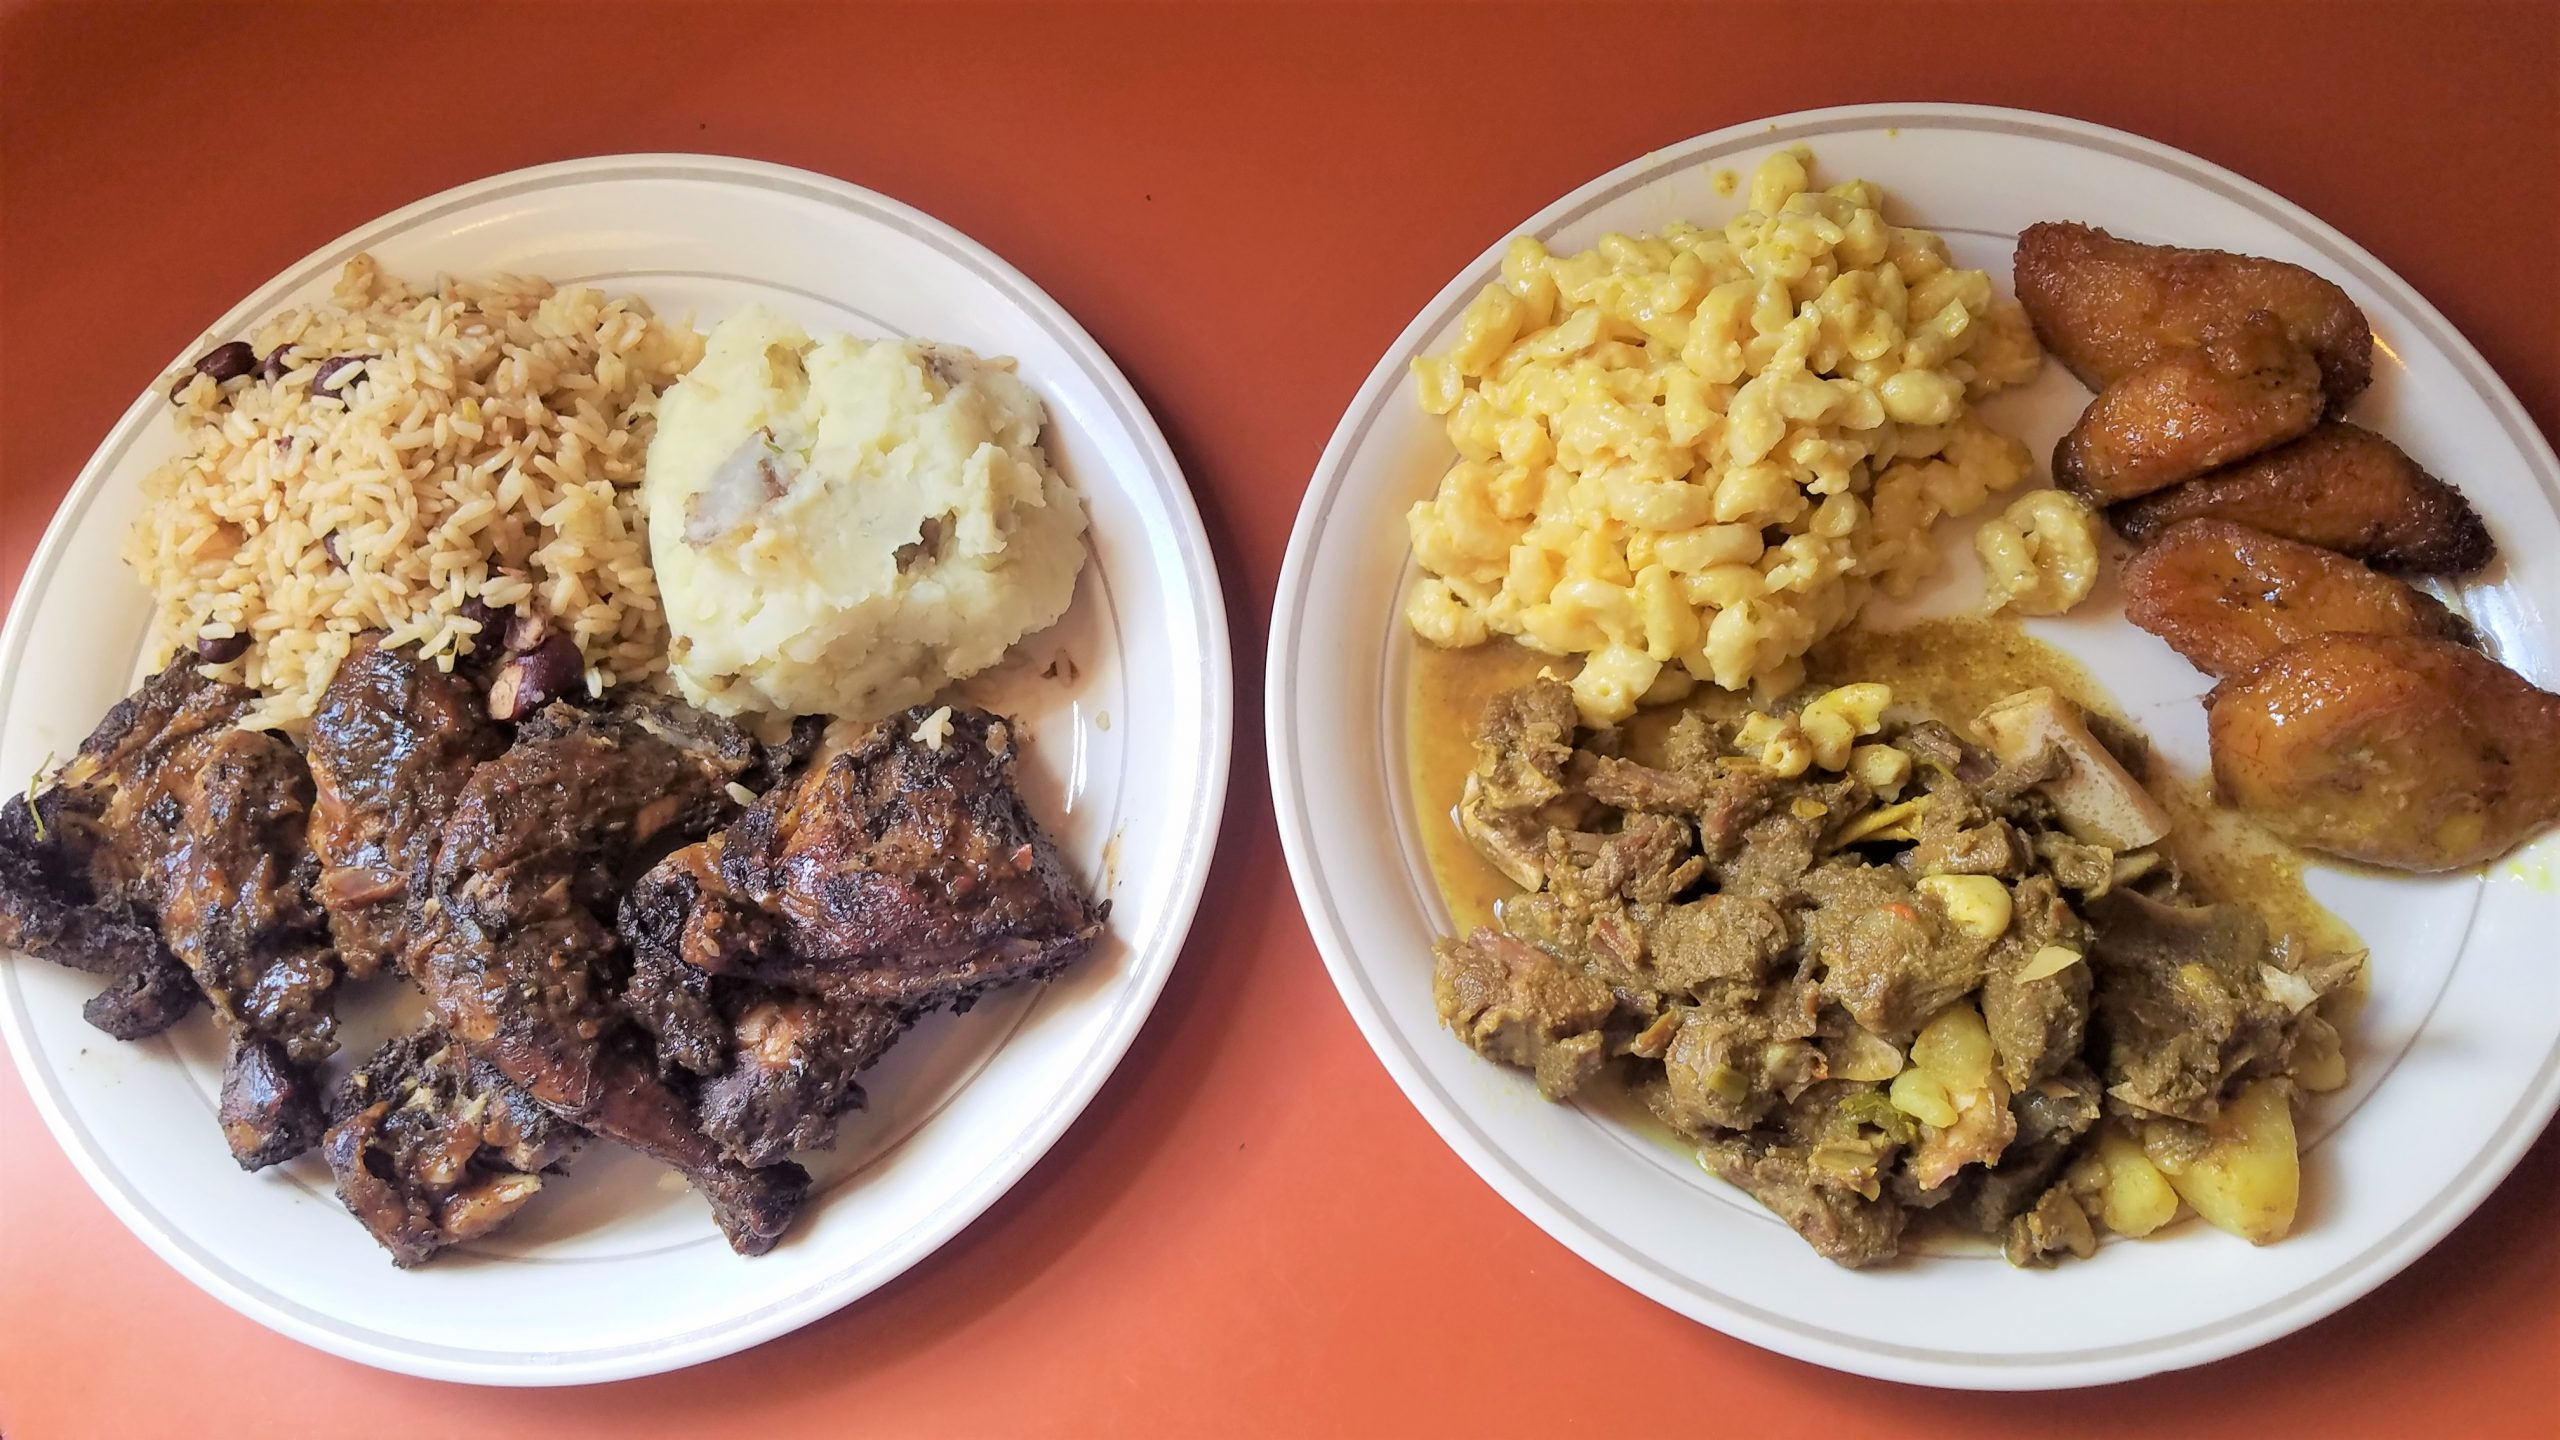 Jerk chicken with mashed potatoes, and beans and rice (l.); curried goat stew with mac and cheese, and fried plantains (r.). Takeout fare re-plated. (photo: Rick Handler)